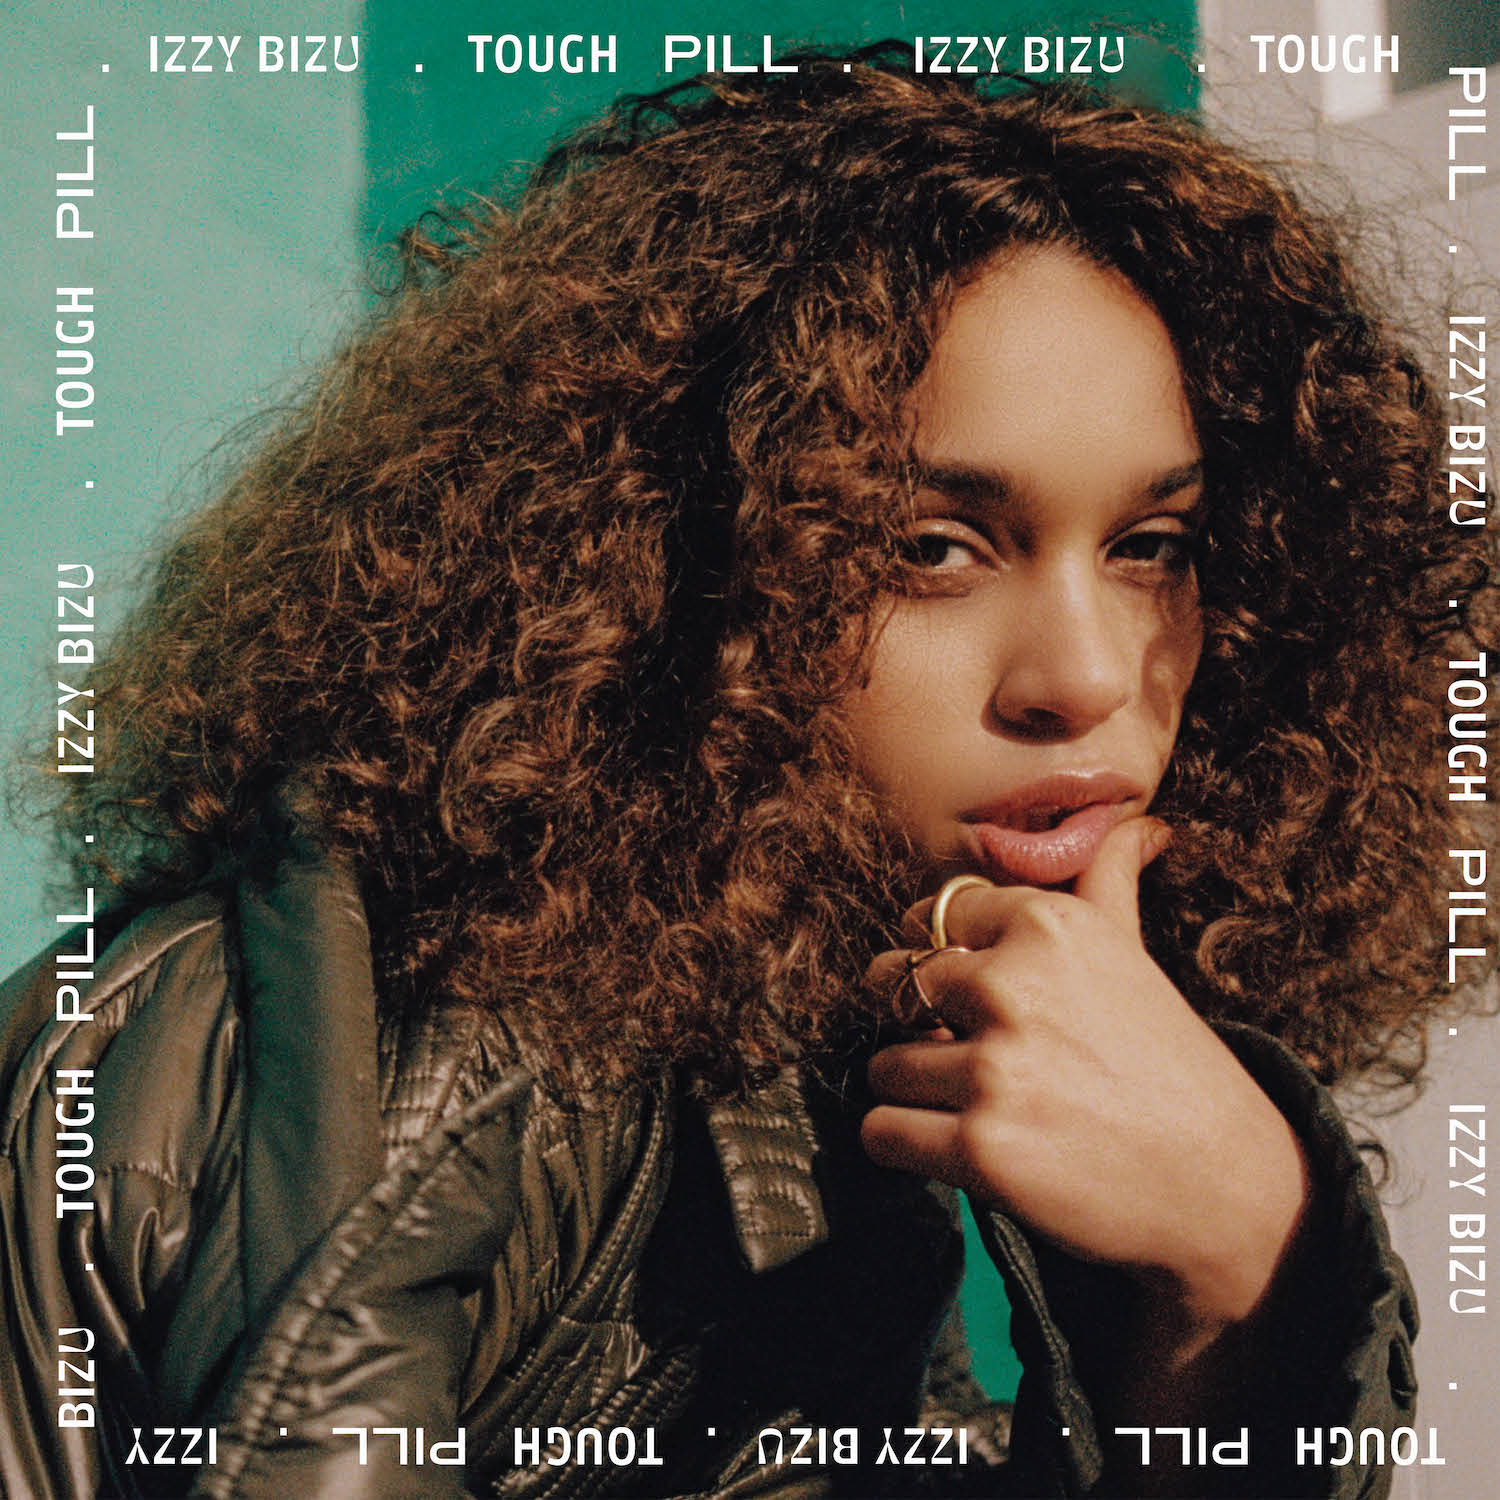 Tough Pill - Izzy Bizu Artwork